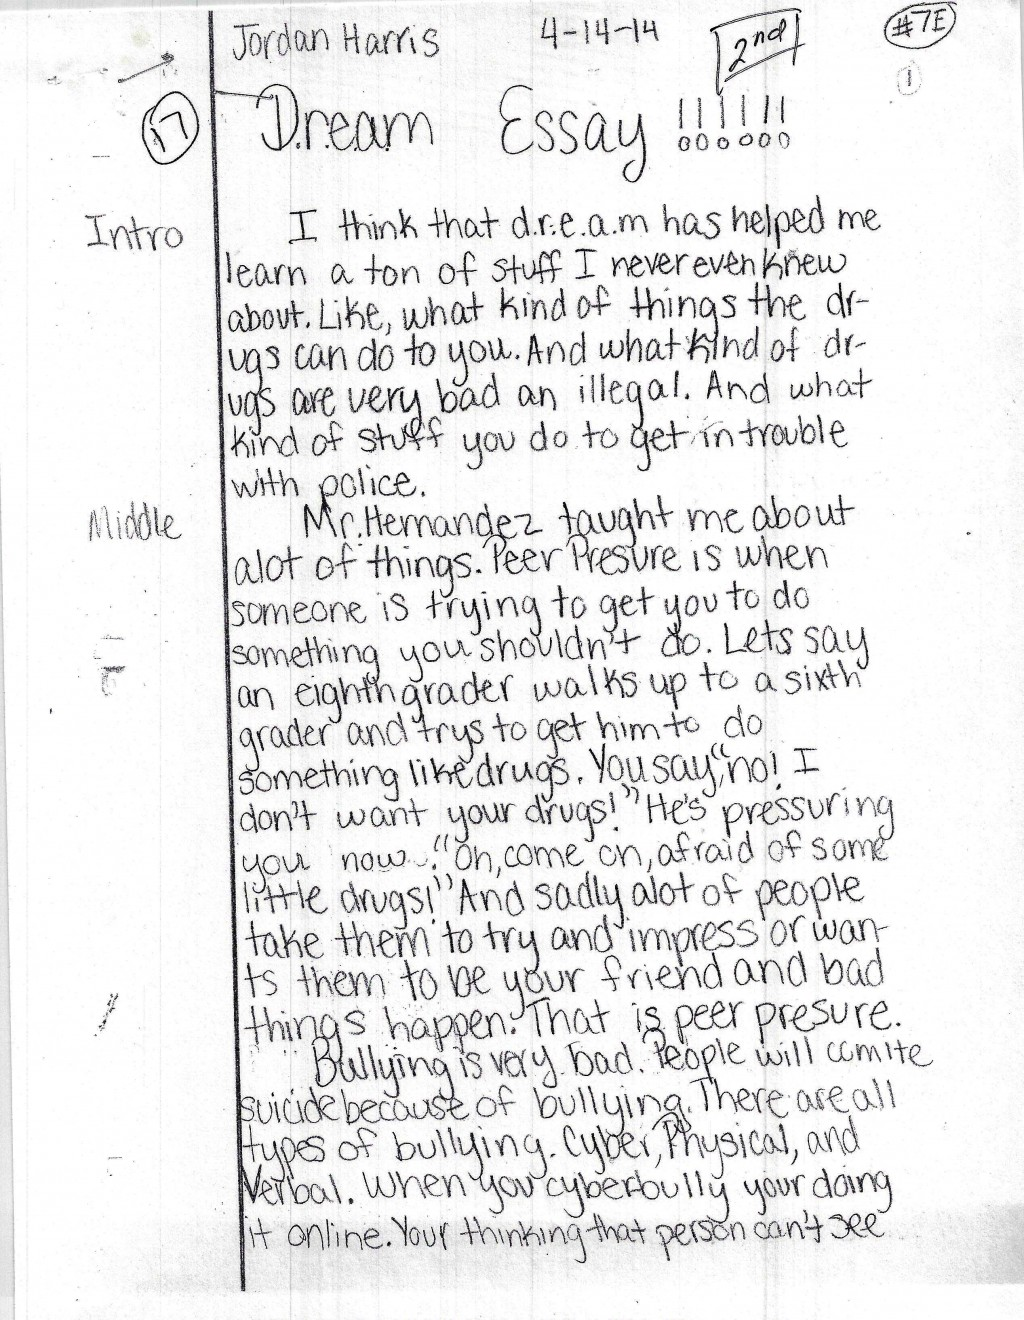 002 Essay On Bullying Example Harris Page1 Amazing The Cause And Effect In School Of Cyberbullying Large